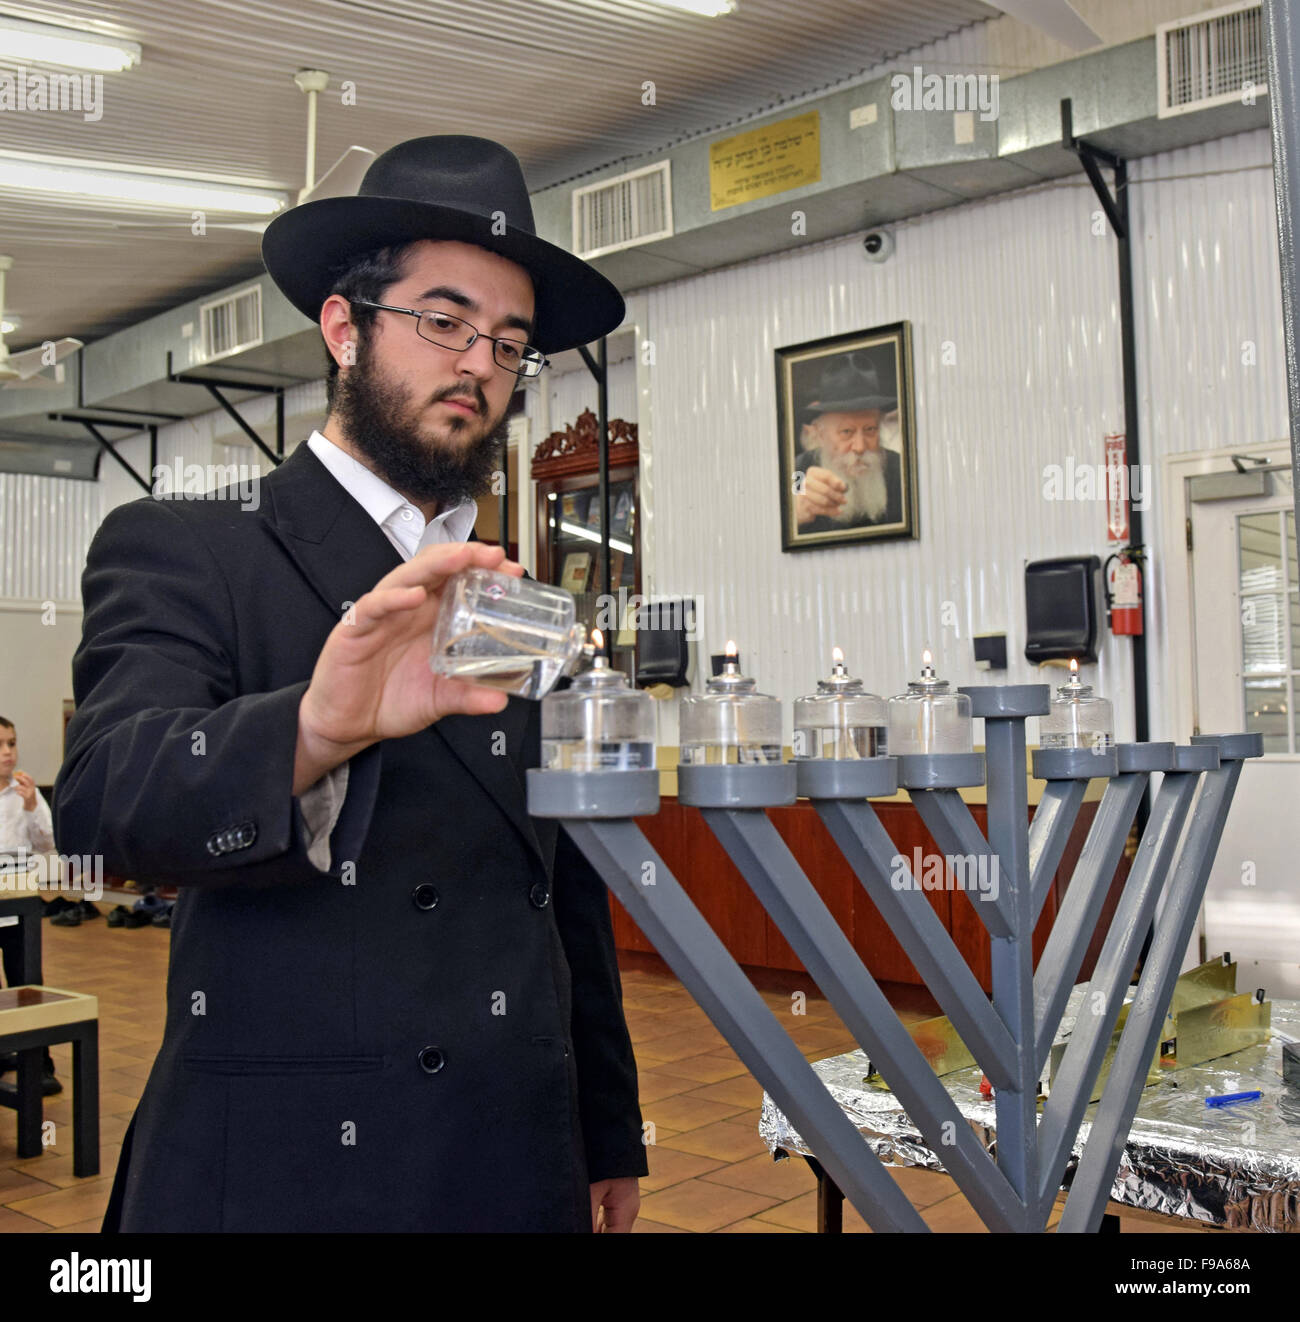 Chanukkah menorah lighting ceremony at the Ohel in Cambia Heights, Queens NYC near the graves of the last 2 Lubavitcher - Stock Image